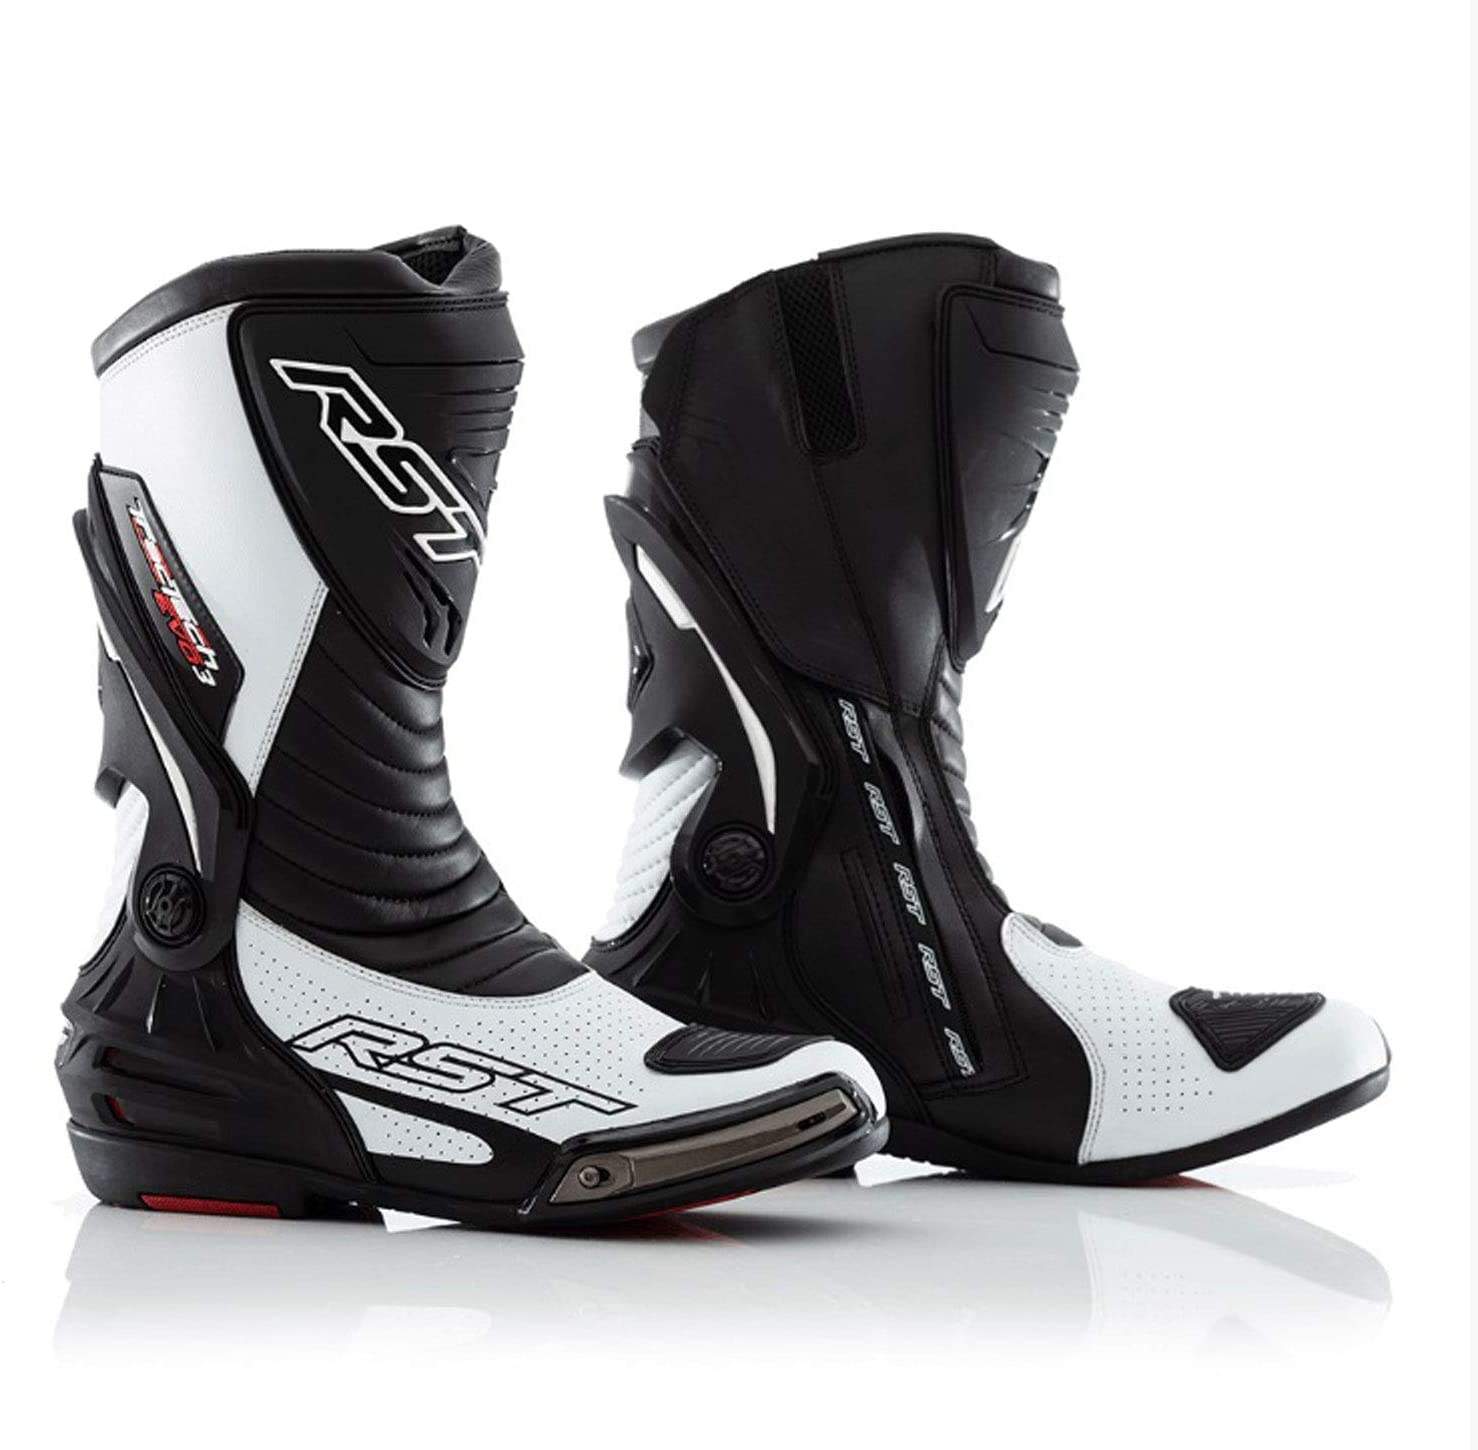 TRACK TECH RST Tractech Evo 3 III Motorcycle Boots Black and White CE BMX Dirt Trail Bike MTB ATV Enduro Rider Safety Shoes UK 8//EU 42